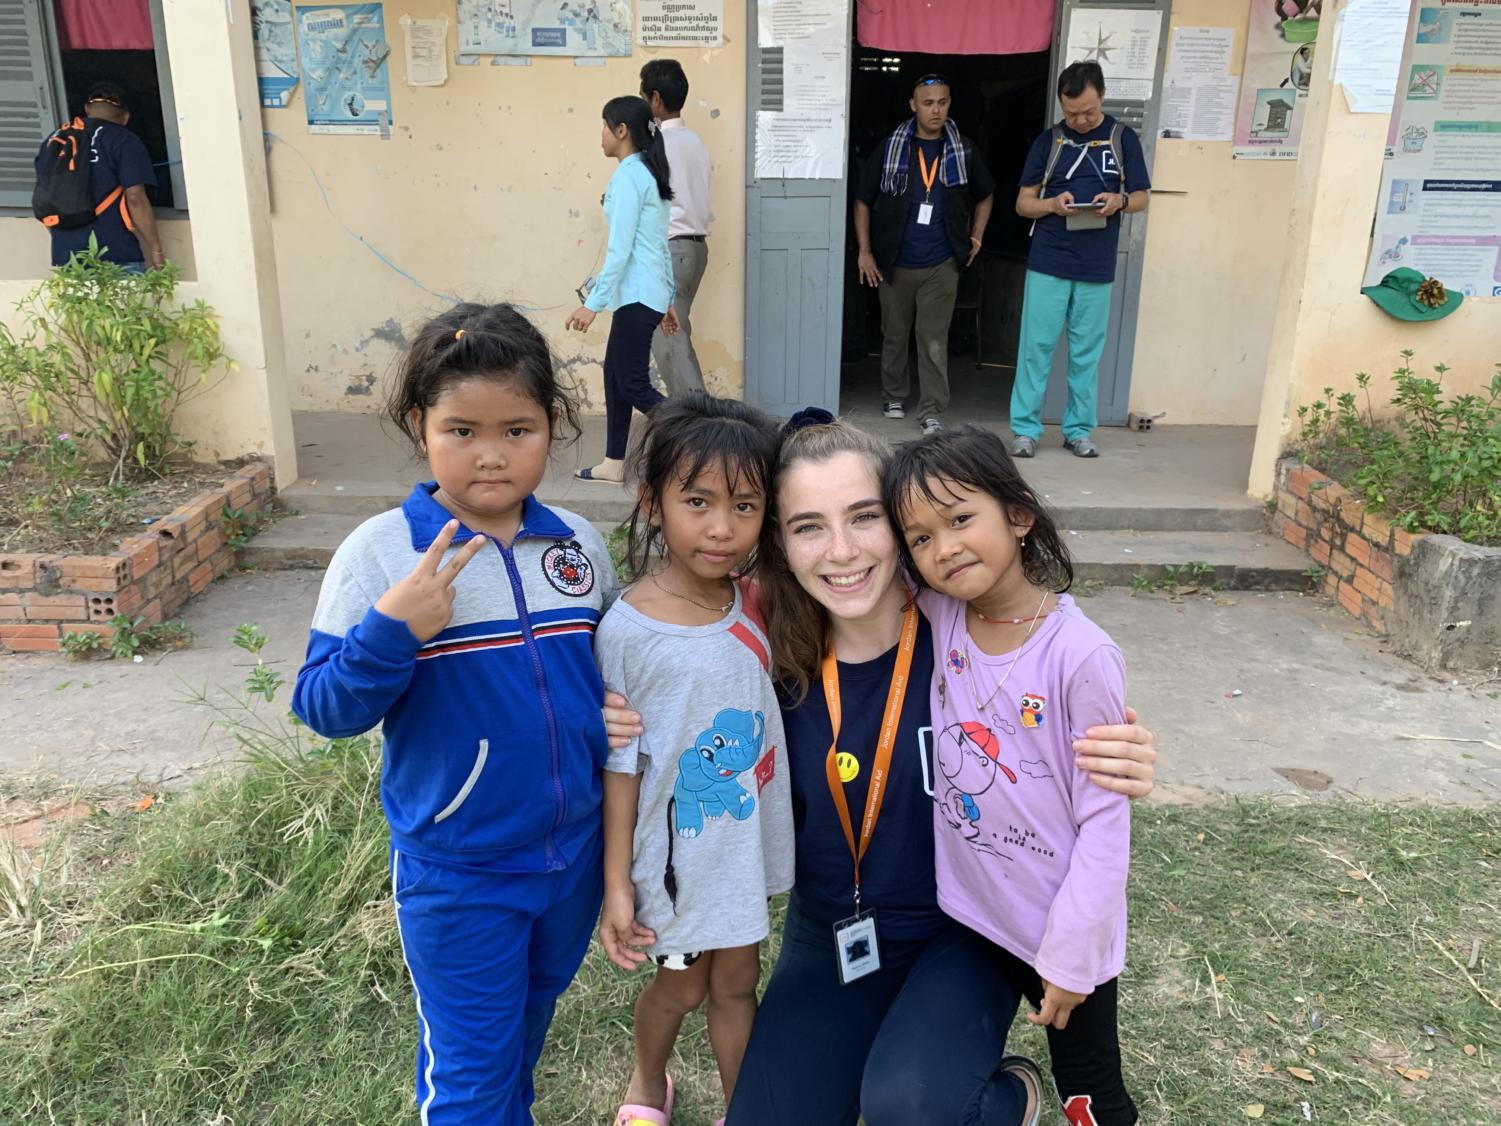 Simone Beilin poses with new friends while on her trip to Cambodia to help those without access to medical treatment.